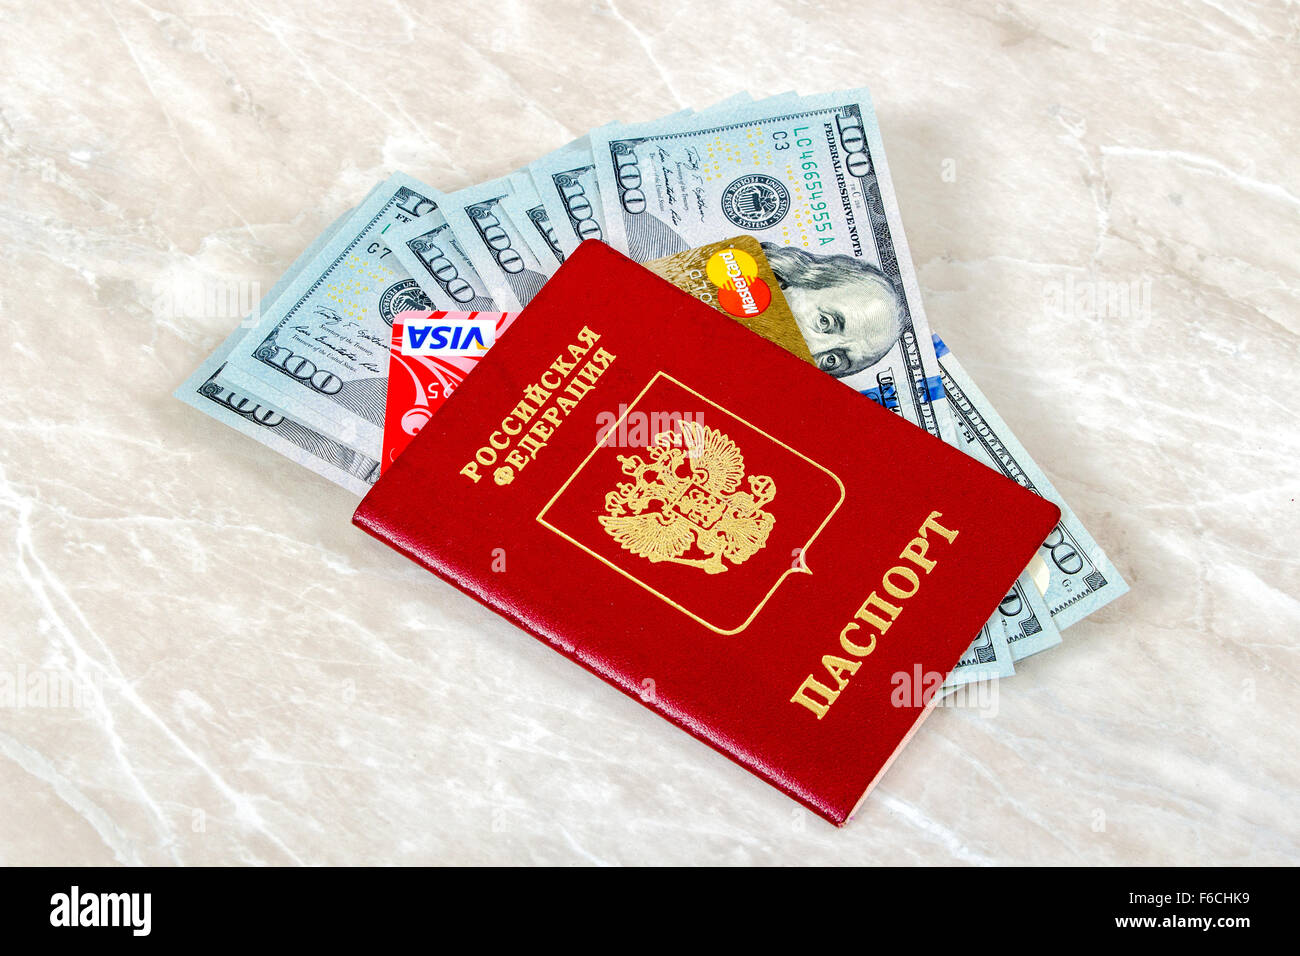 Russian Passport with VISA and Mastercard Debit Card,  American dollars Stock Photo